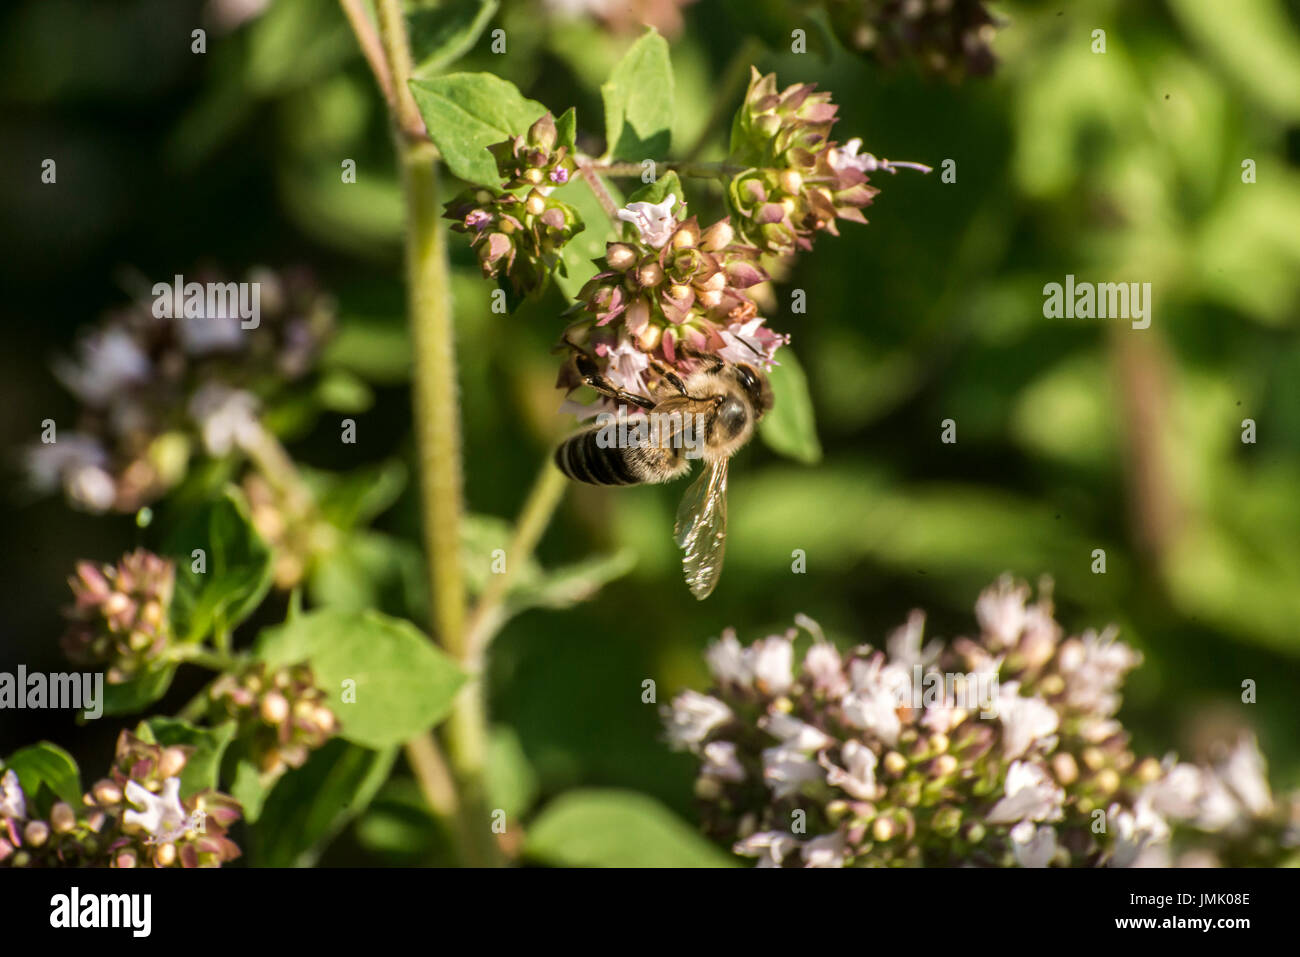 close up of a honey bee extracting nectar form the blooms on a oregano plant in an organic garden - Stock Image